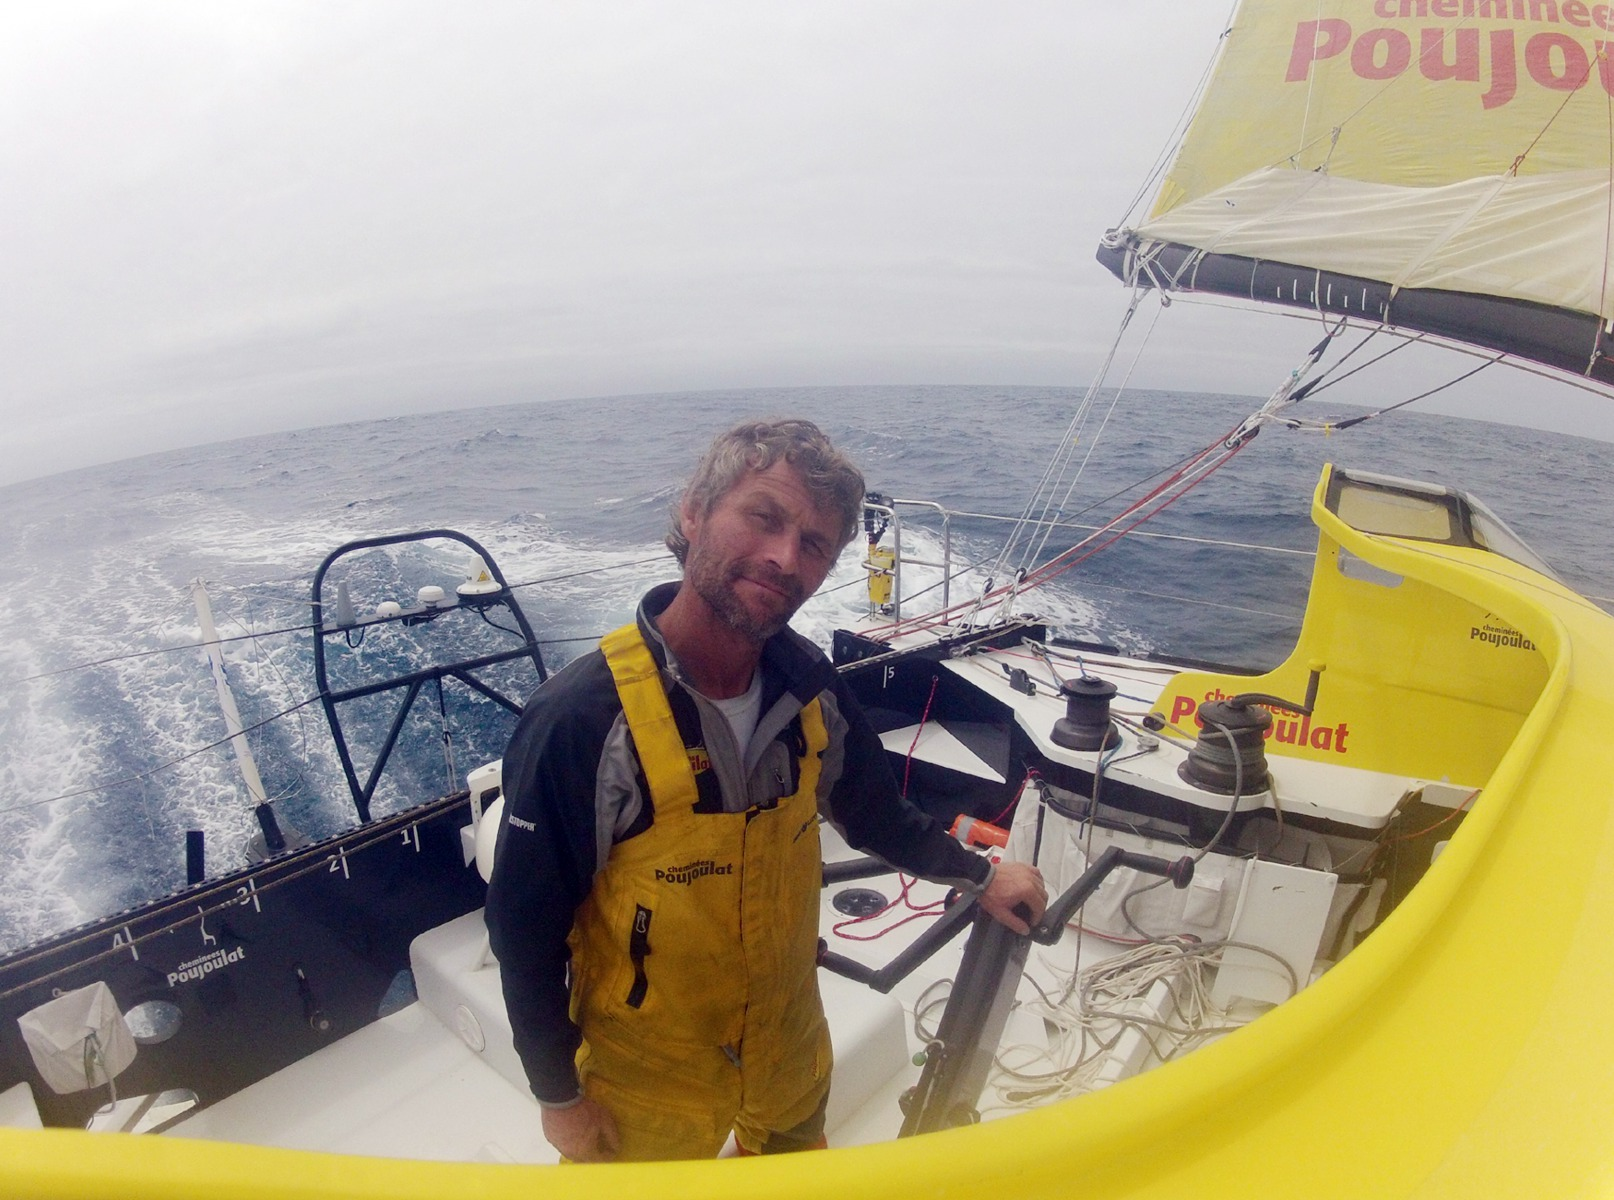 VENDEE GLOBE 2012/2013 - INDIAN OCEAN - 17/12/2012 - PHOTO BERNARD STAMM (SUI) / CHEMINEES POUJOULAT